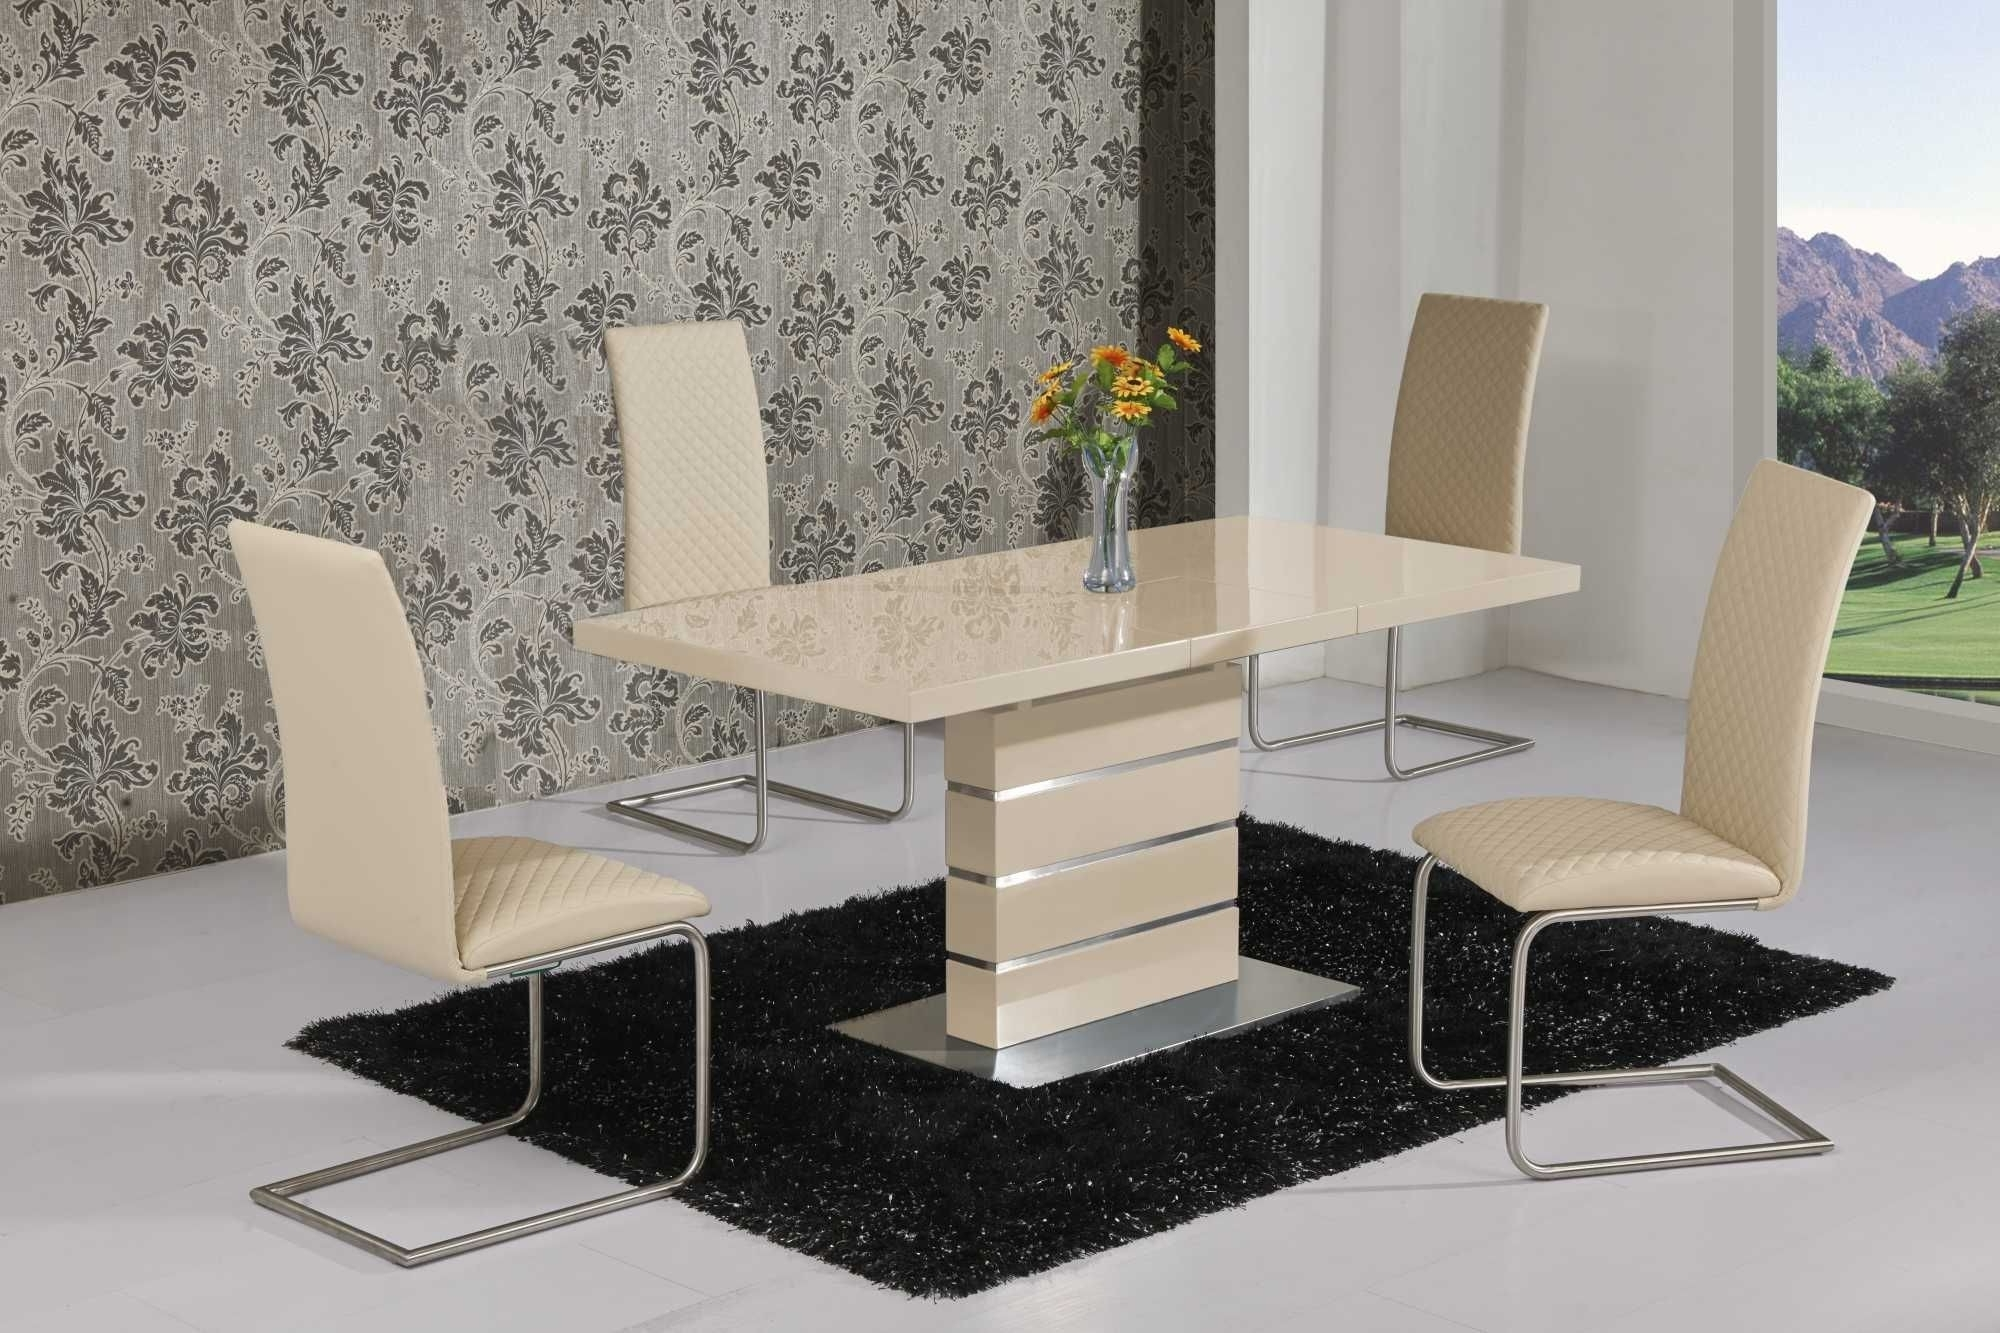 Buy Allison Small Cream Extending Dining Table 120Cm – 160Cm Regarding Latest Cream Lacquer Dining Tables (Gallery 10 of 25)